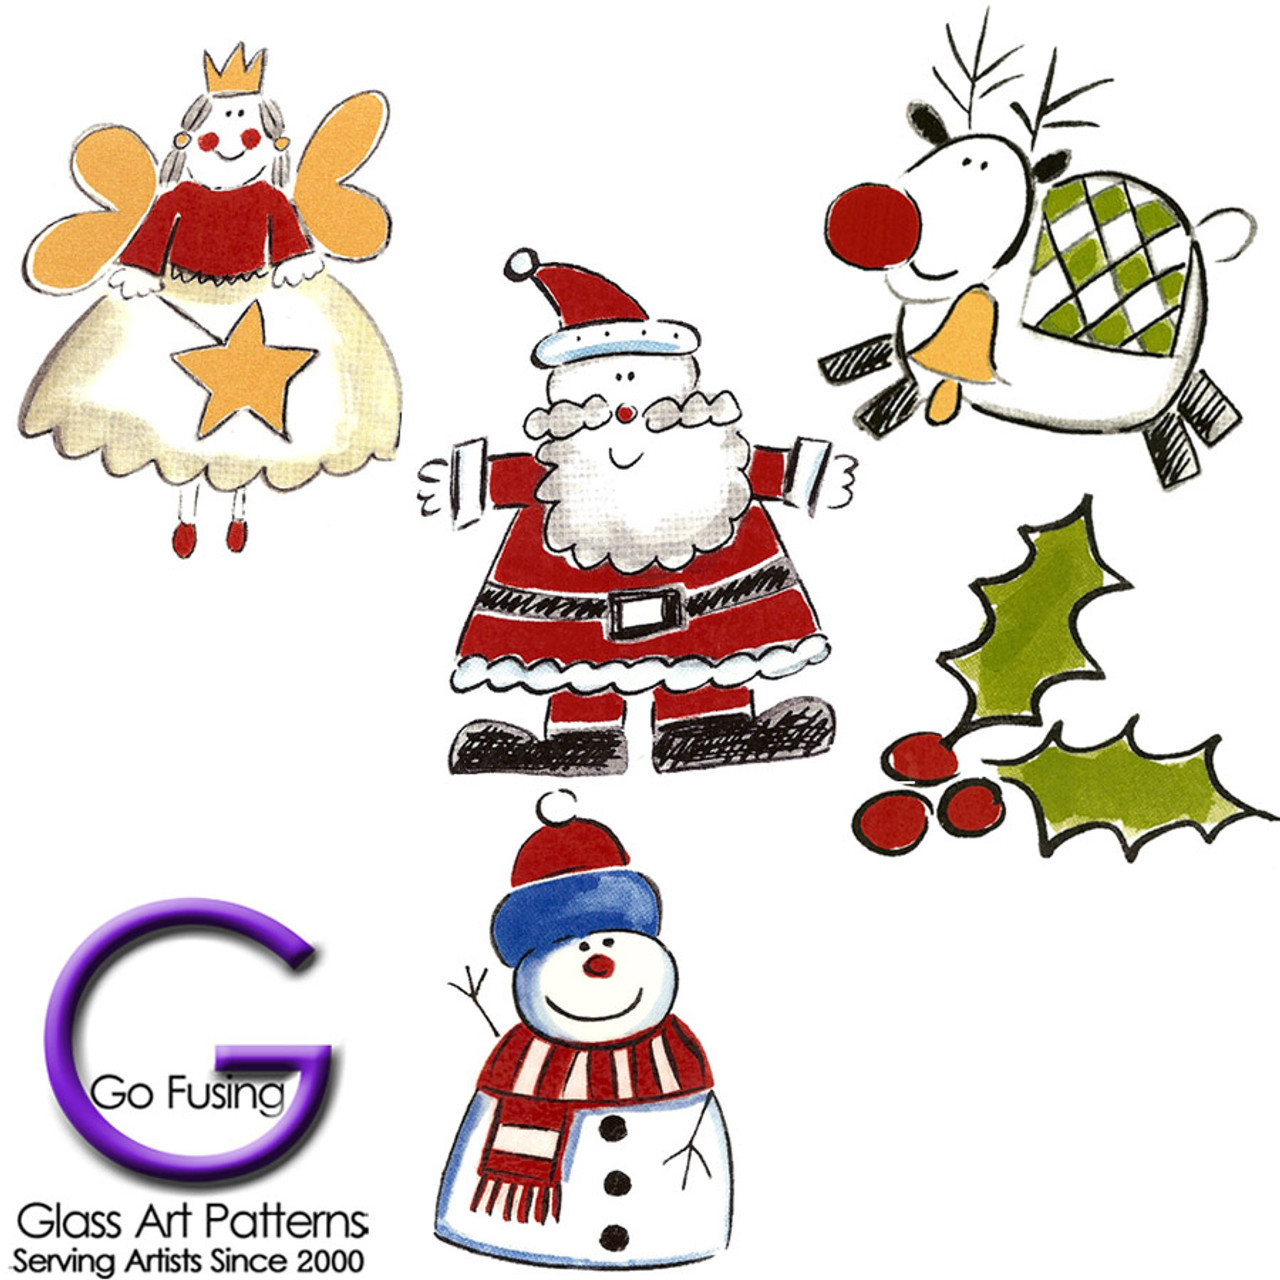 christmas wimpsy decals for fused glass or ceramics are a waterslide decal great for crafts - Christmas Decals For Glass